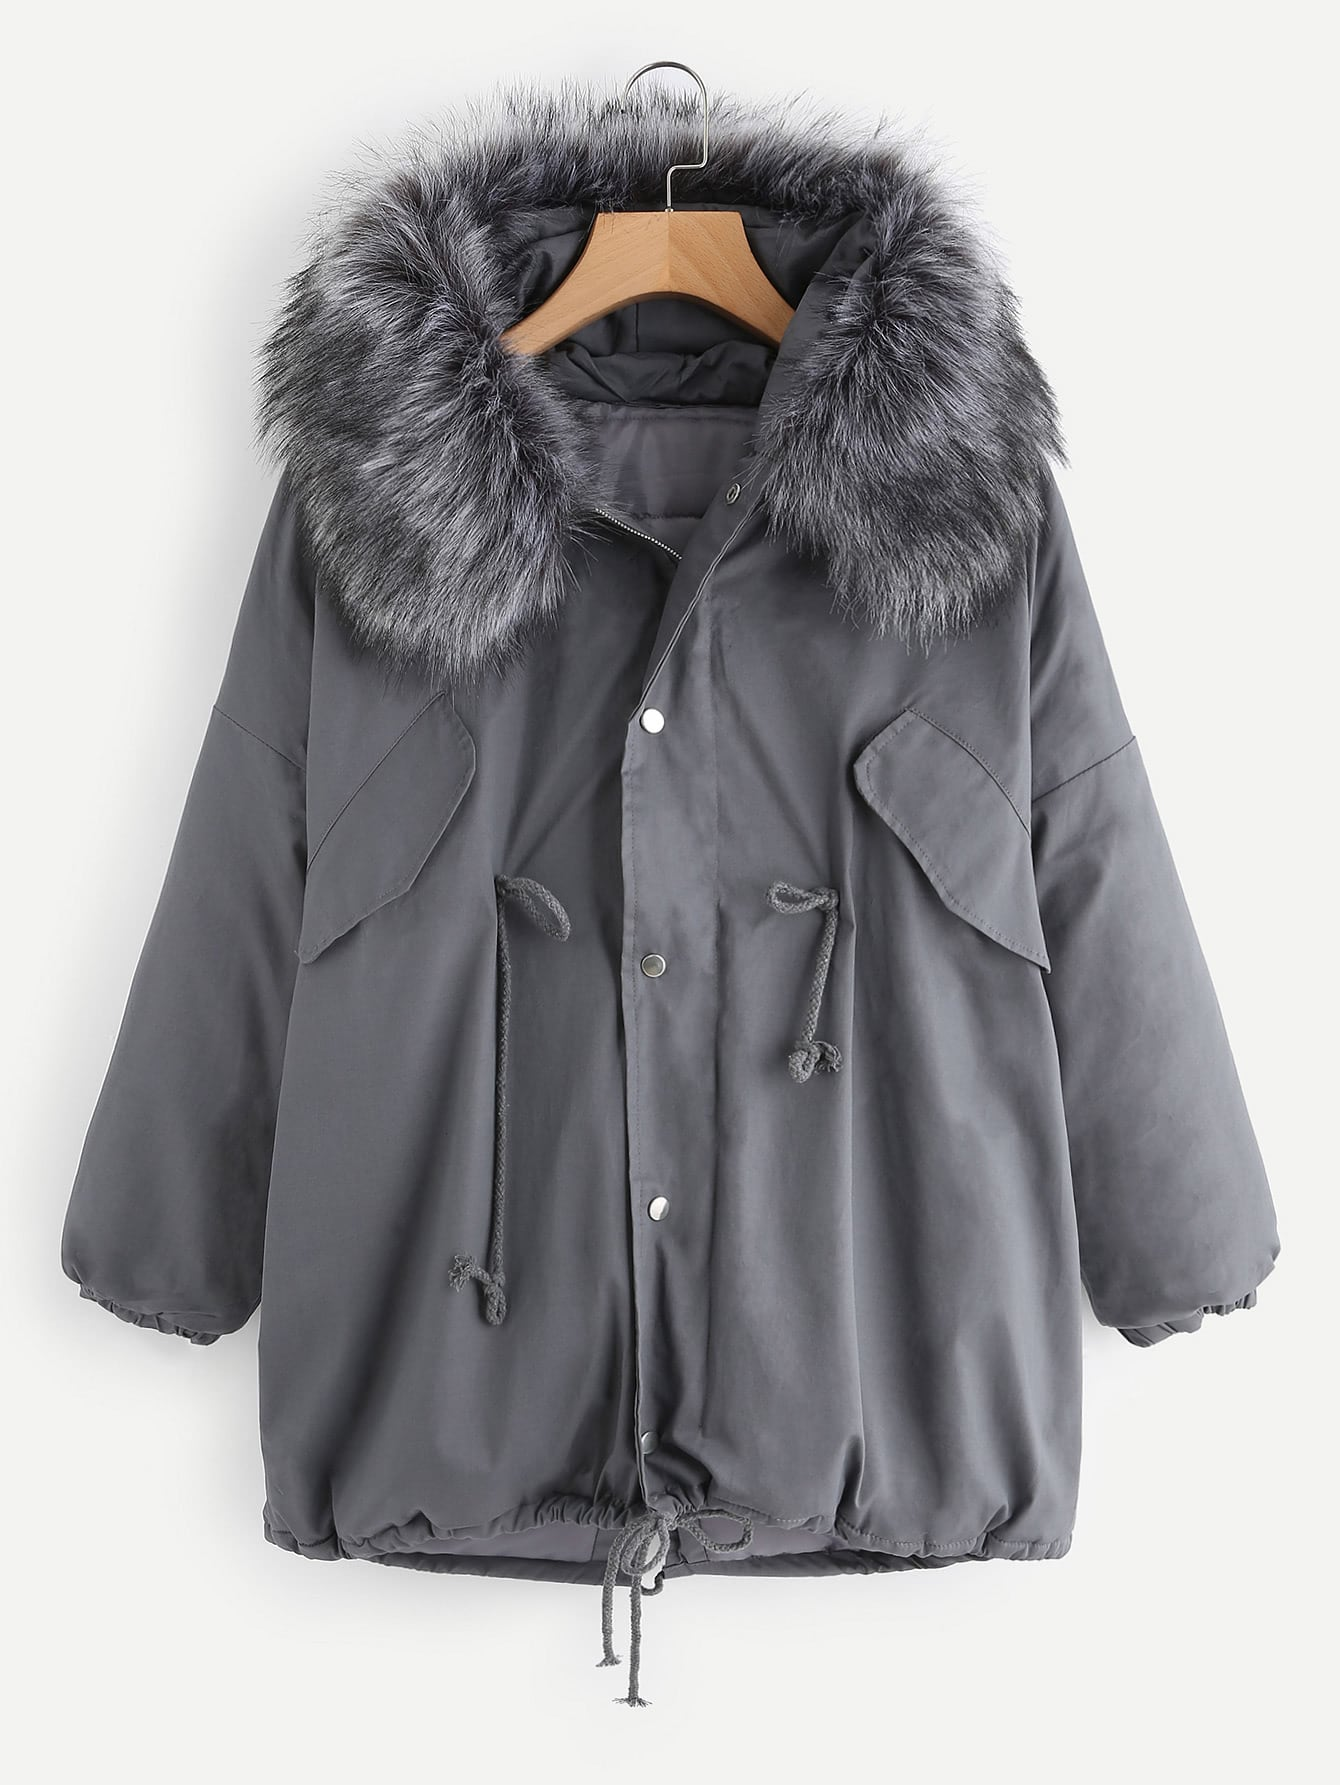 Contrast Faux Fur Hooded Parka Coat -SheIn(Sheinside)